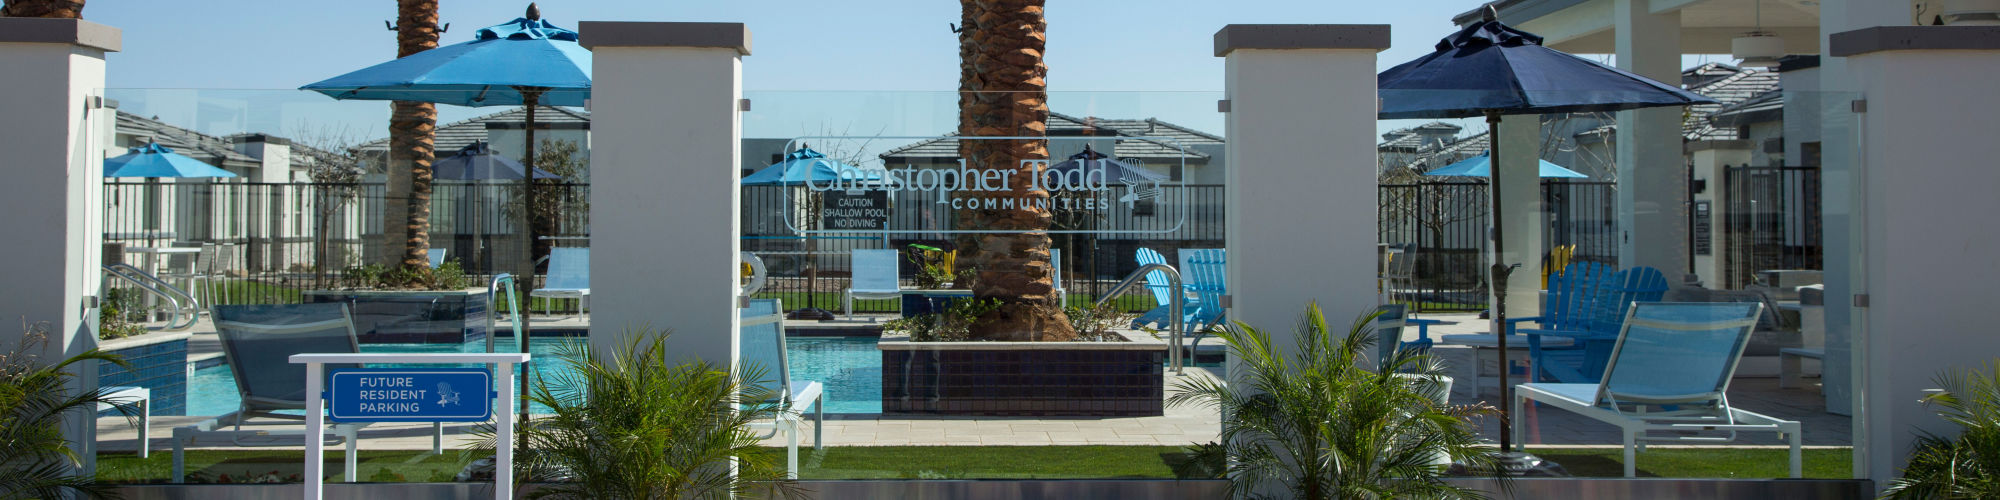 Apply to live at Christopher Todd Communities on Greenway in Surprise, Arizona